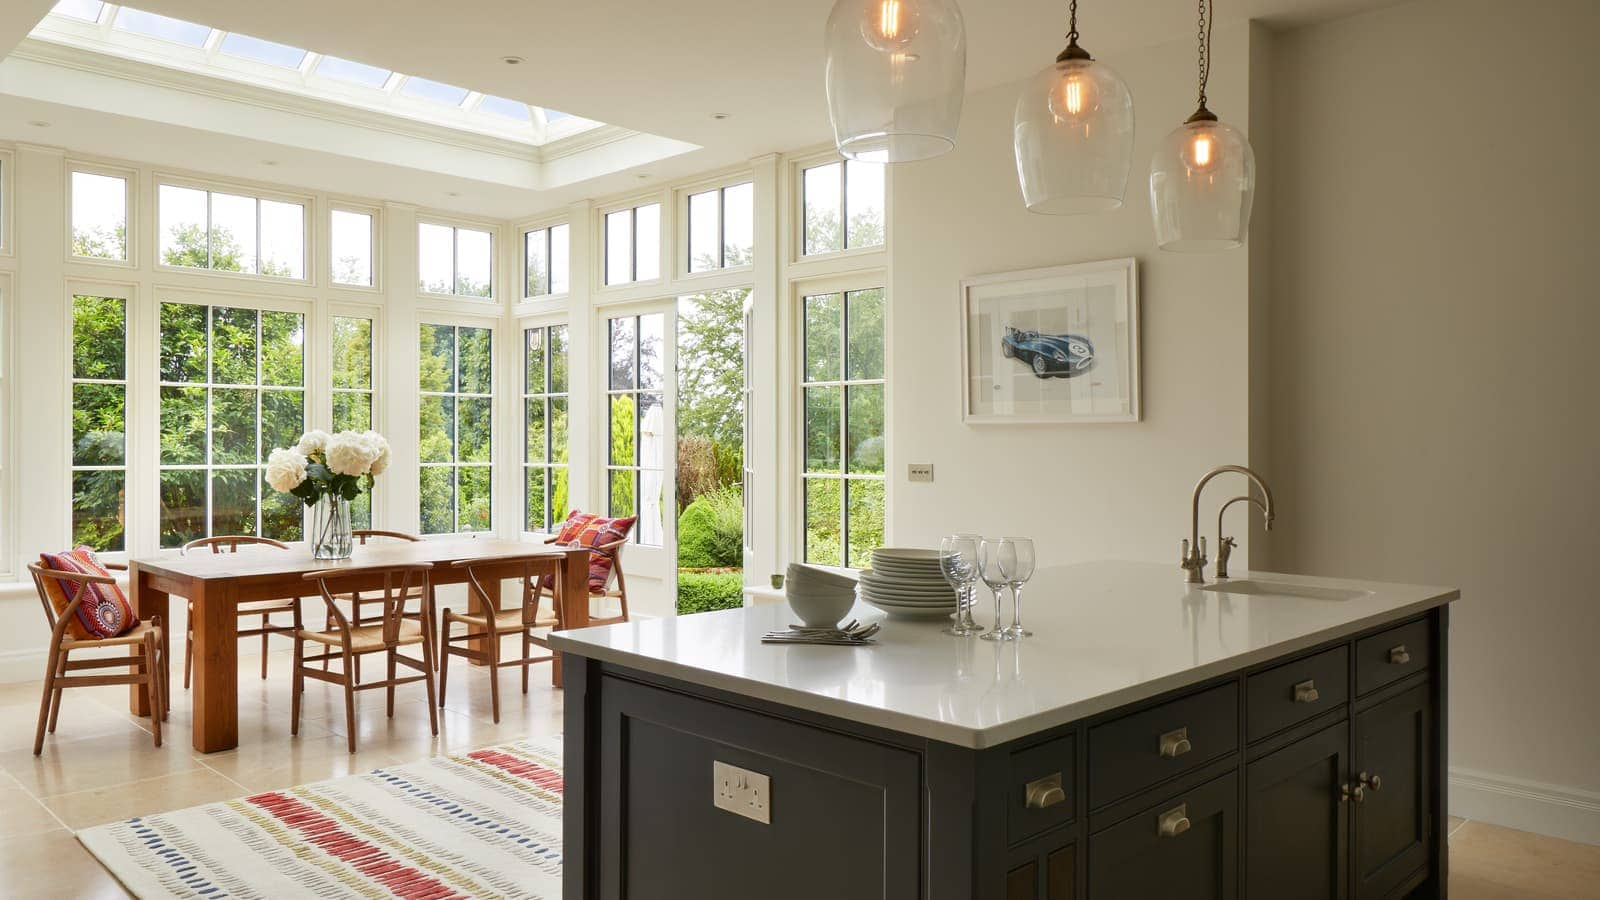 Stunning open plan kitchen dining area